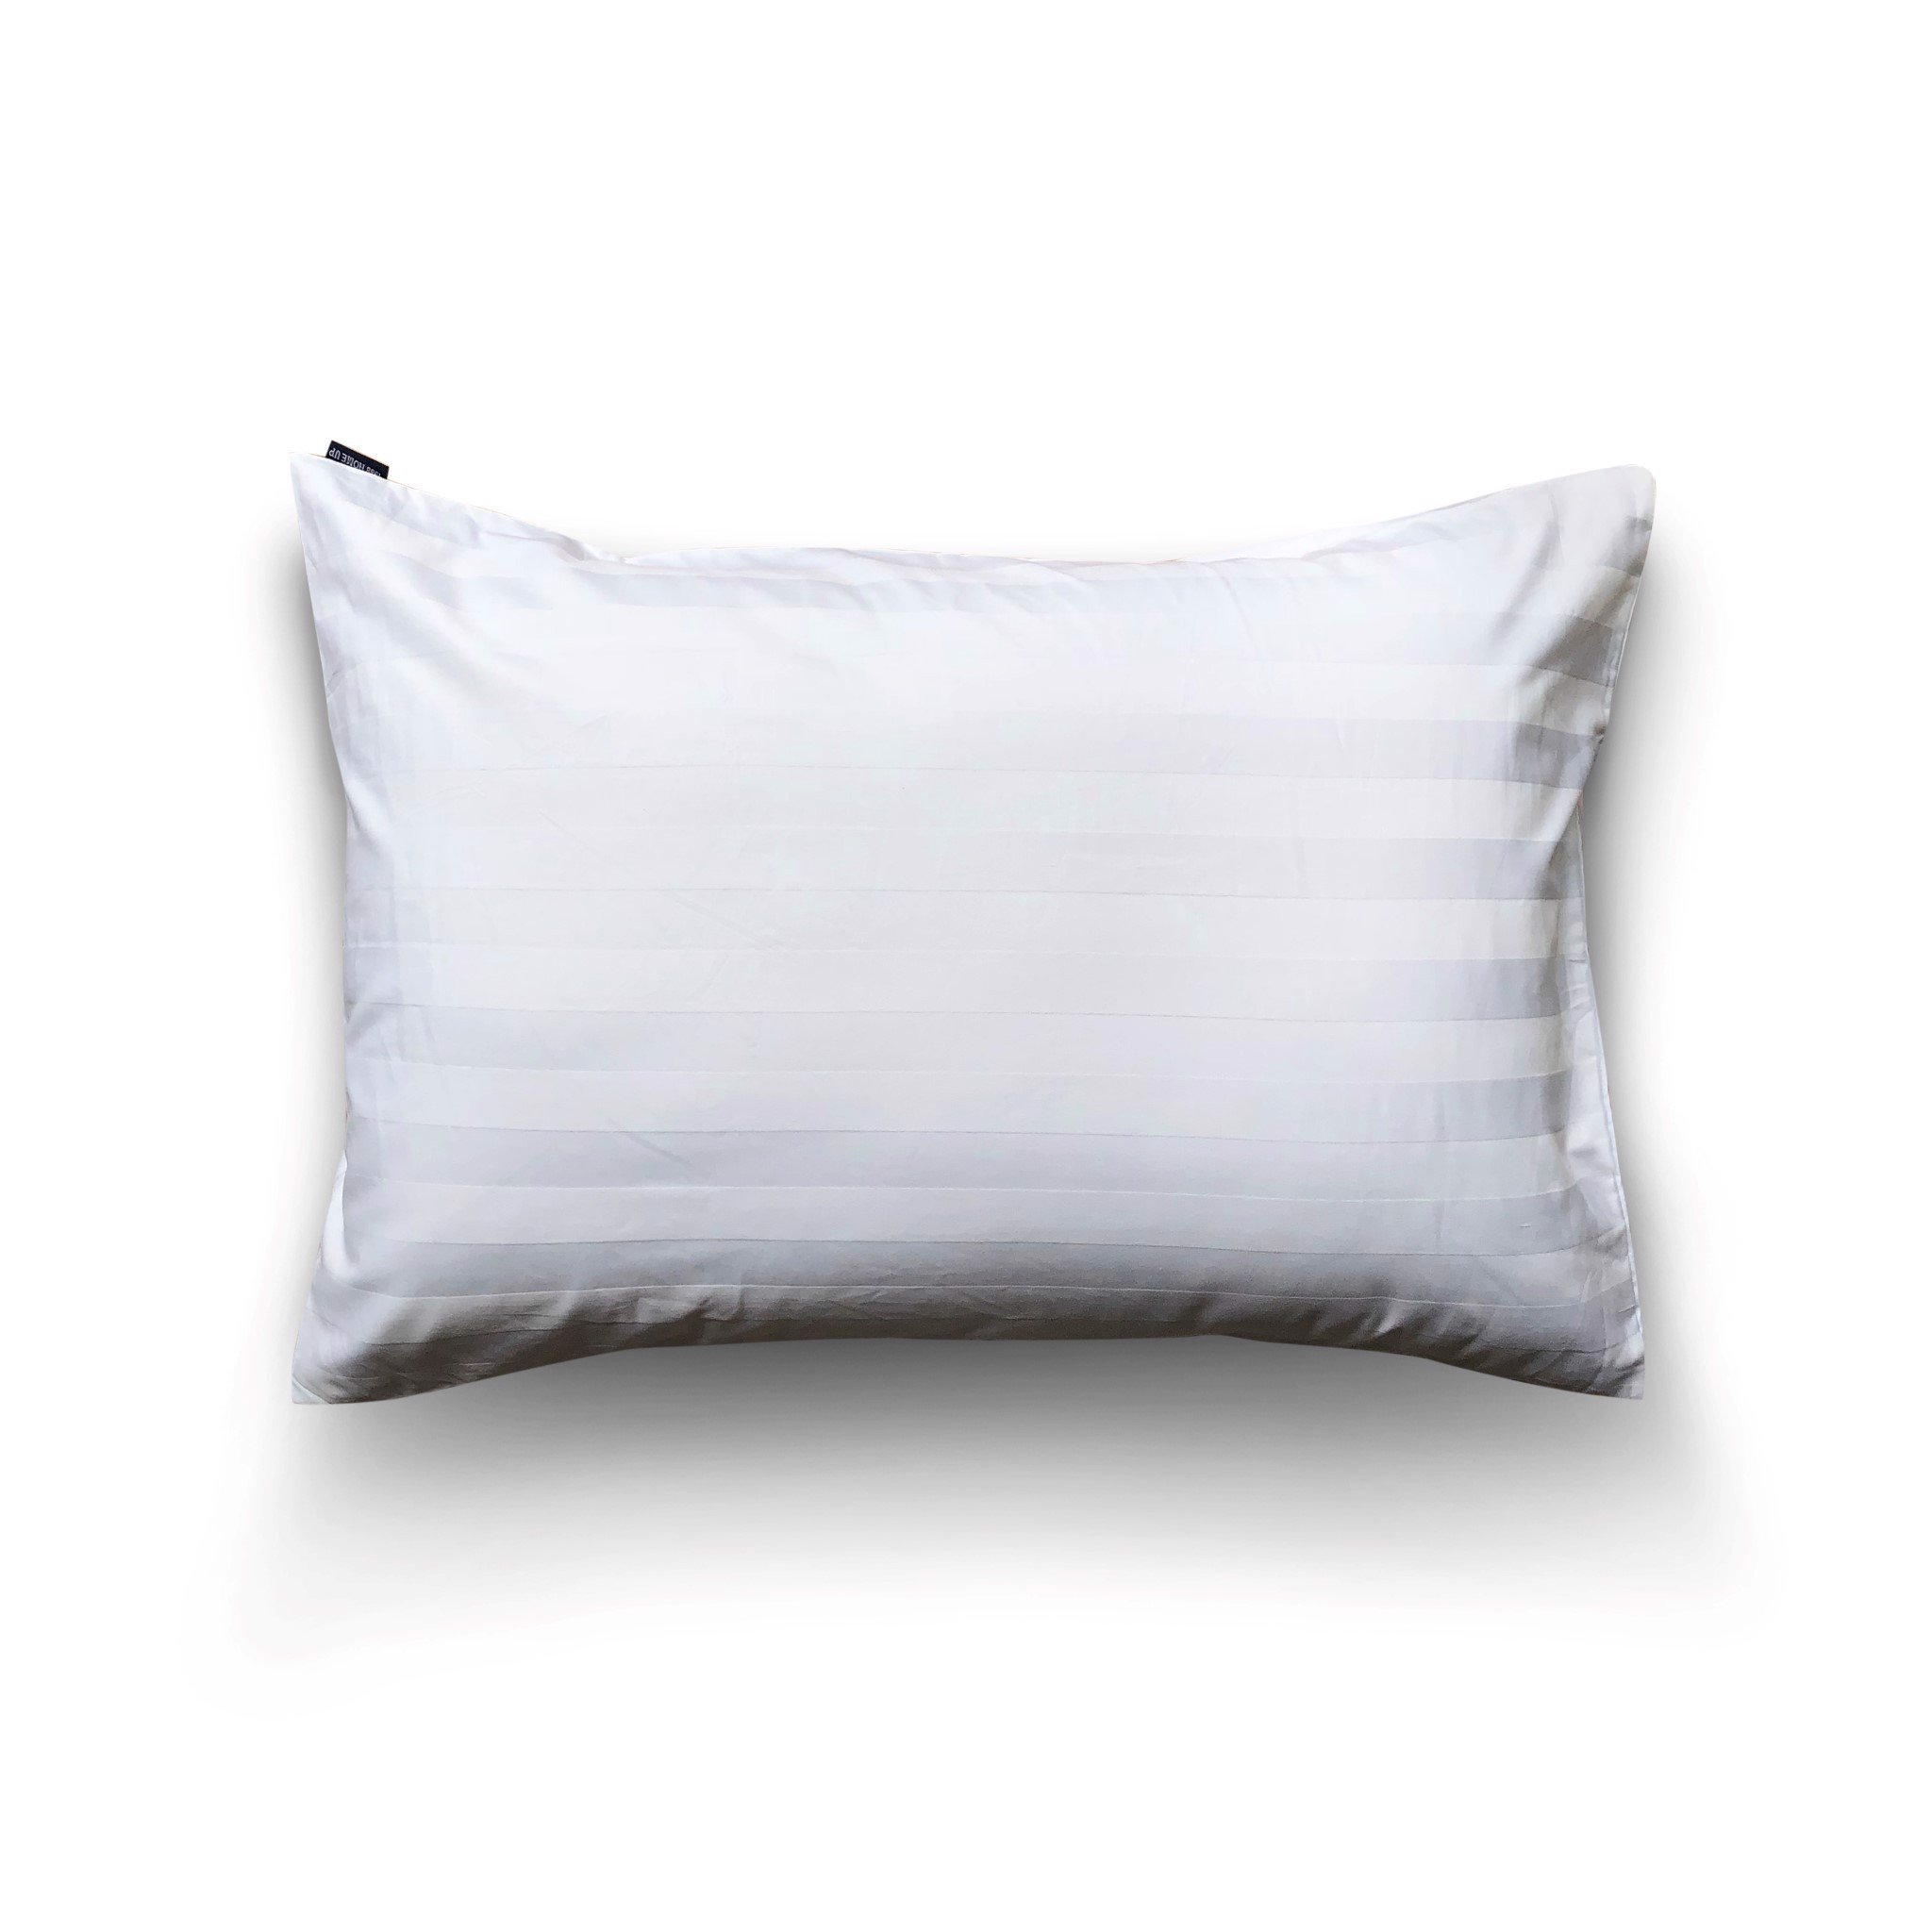 Pillow case 3cm white striped (2pcs)